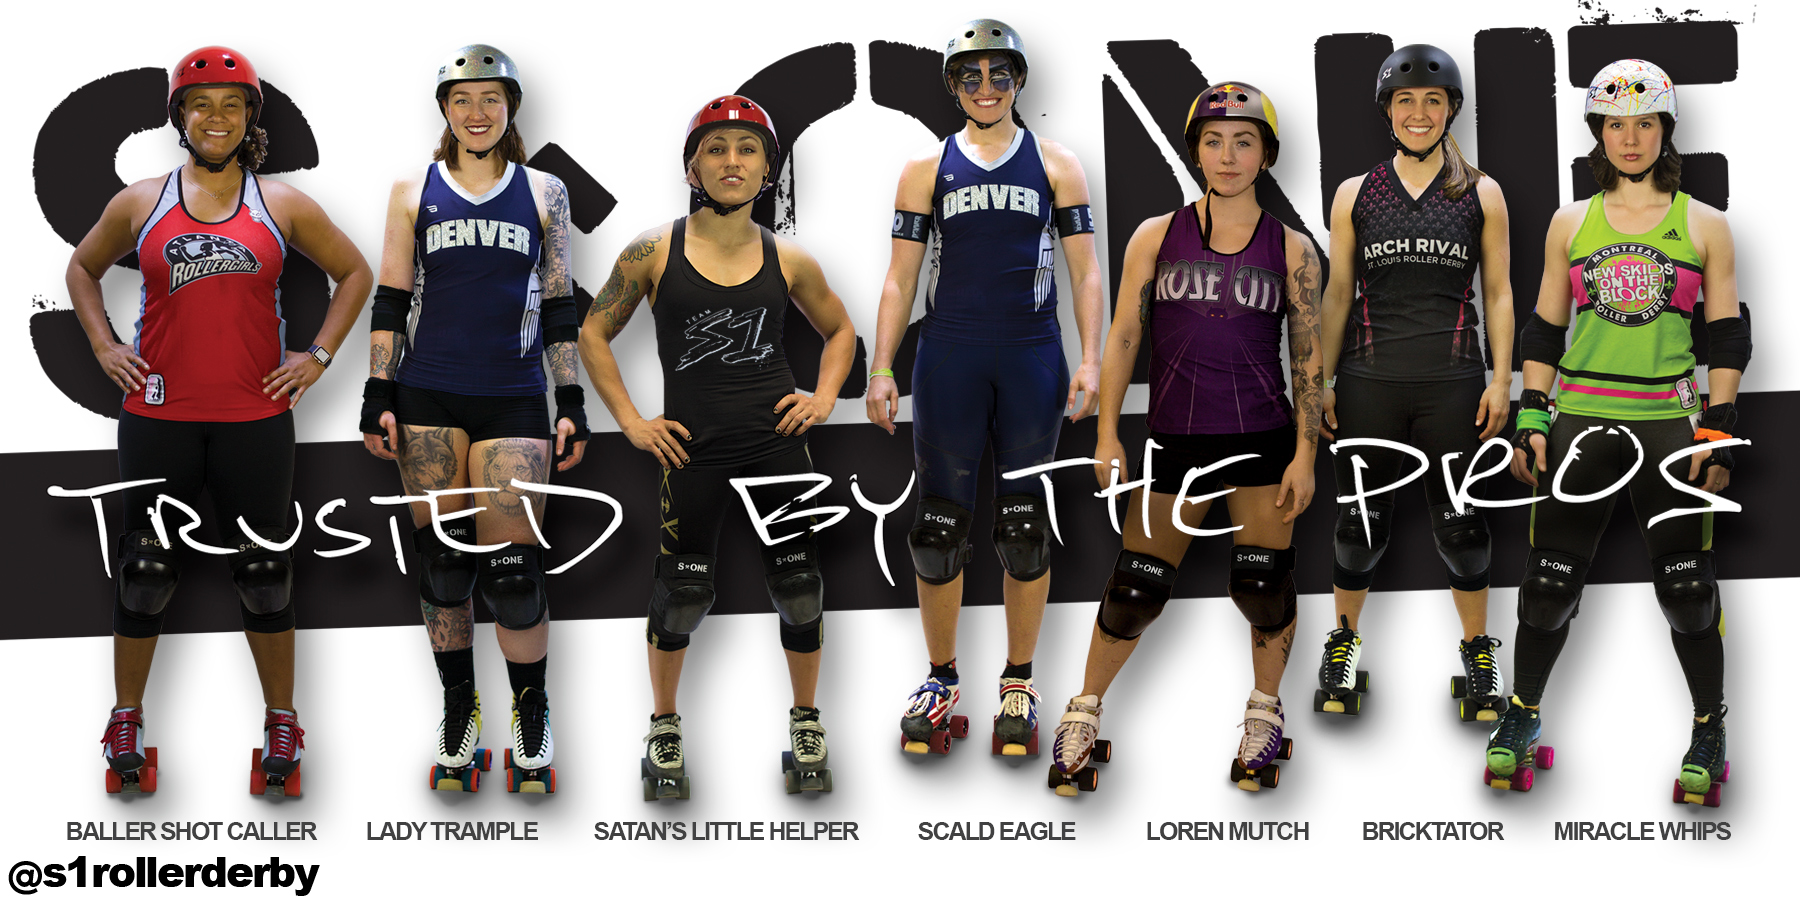 2019derbyteam4.jpg